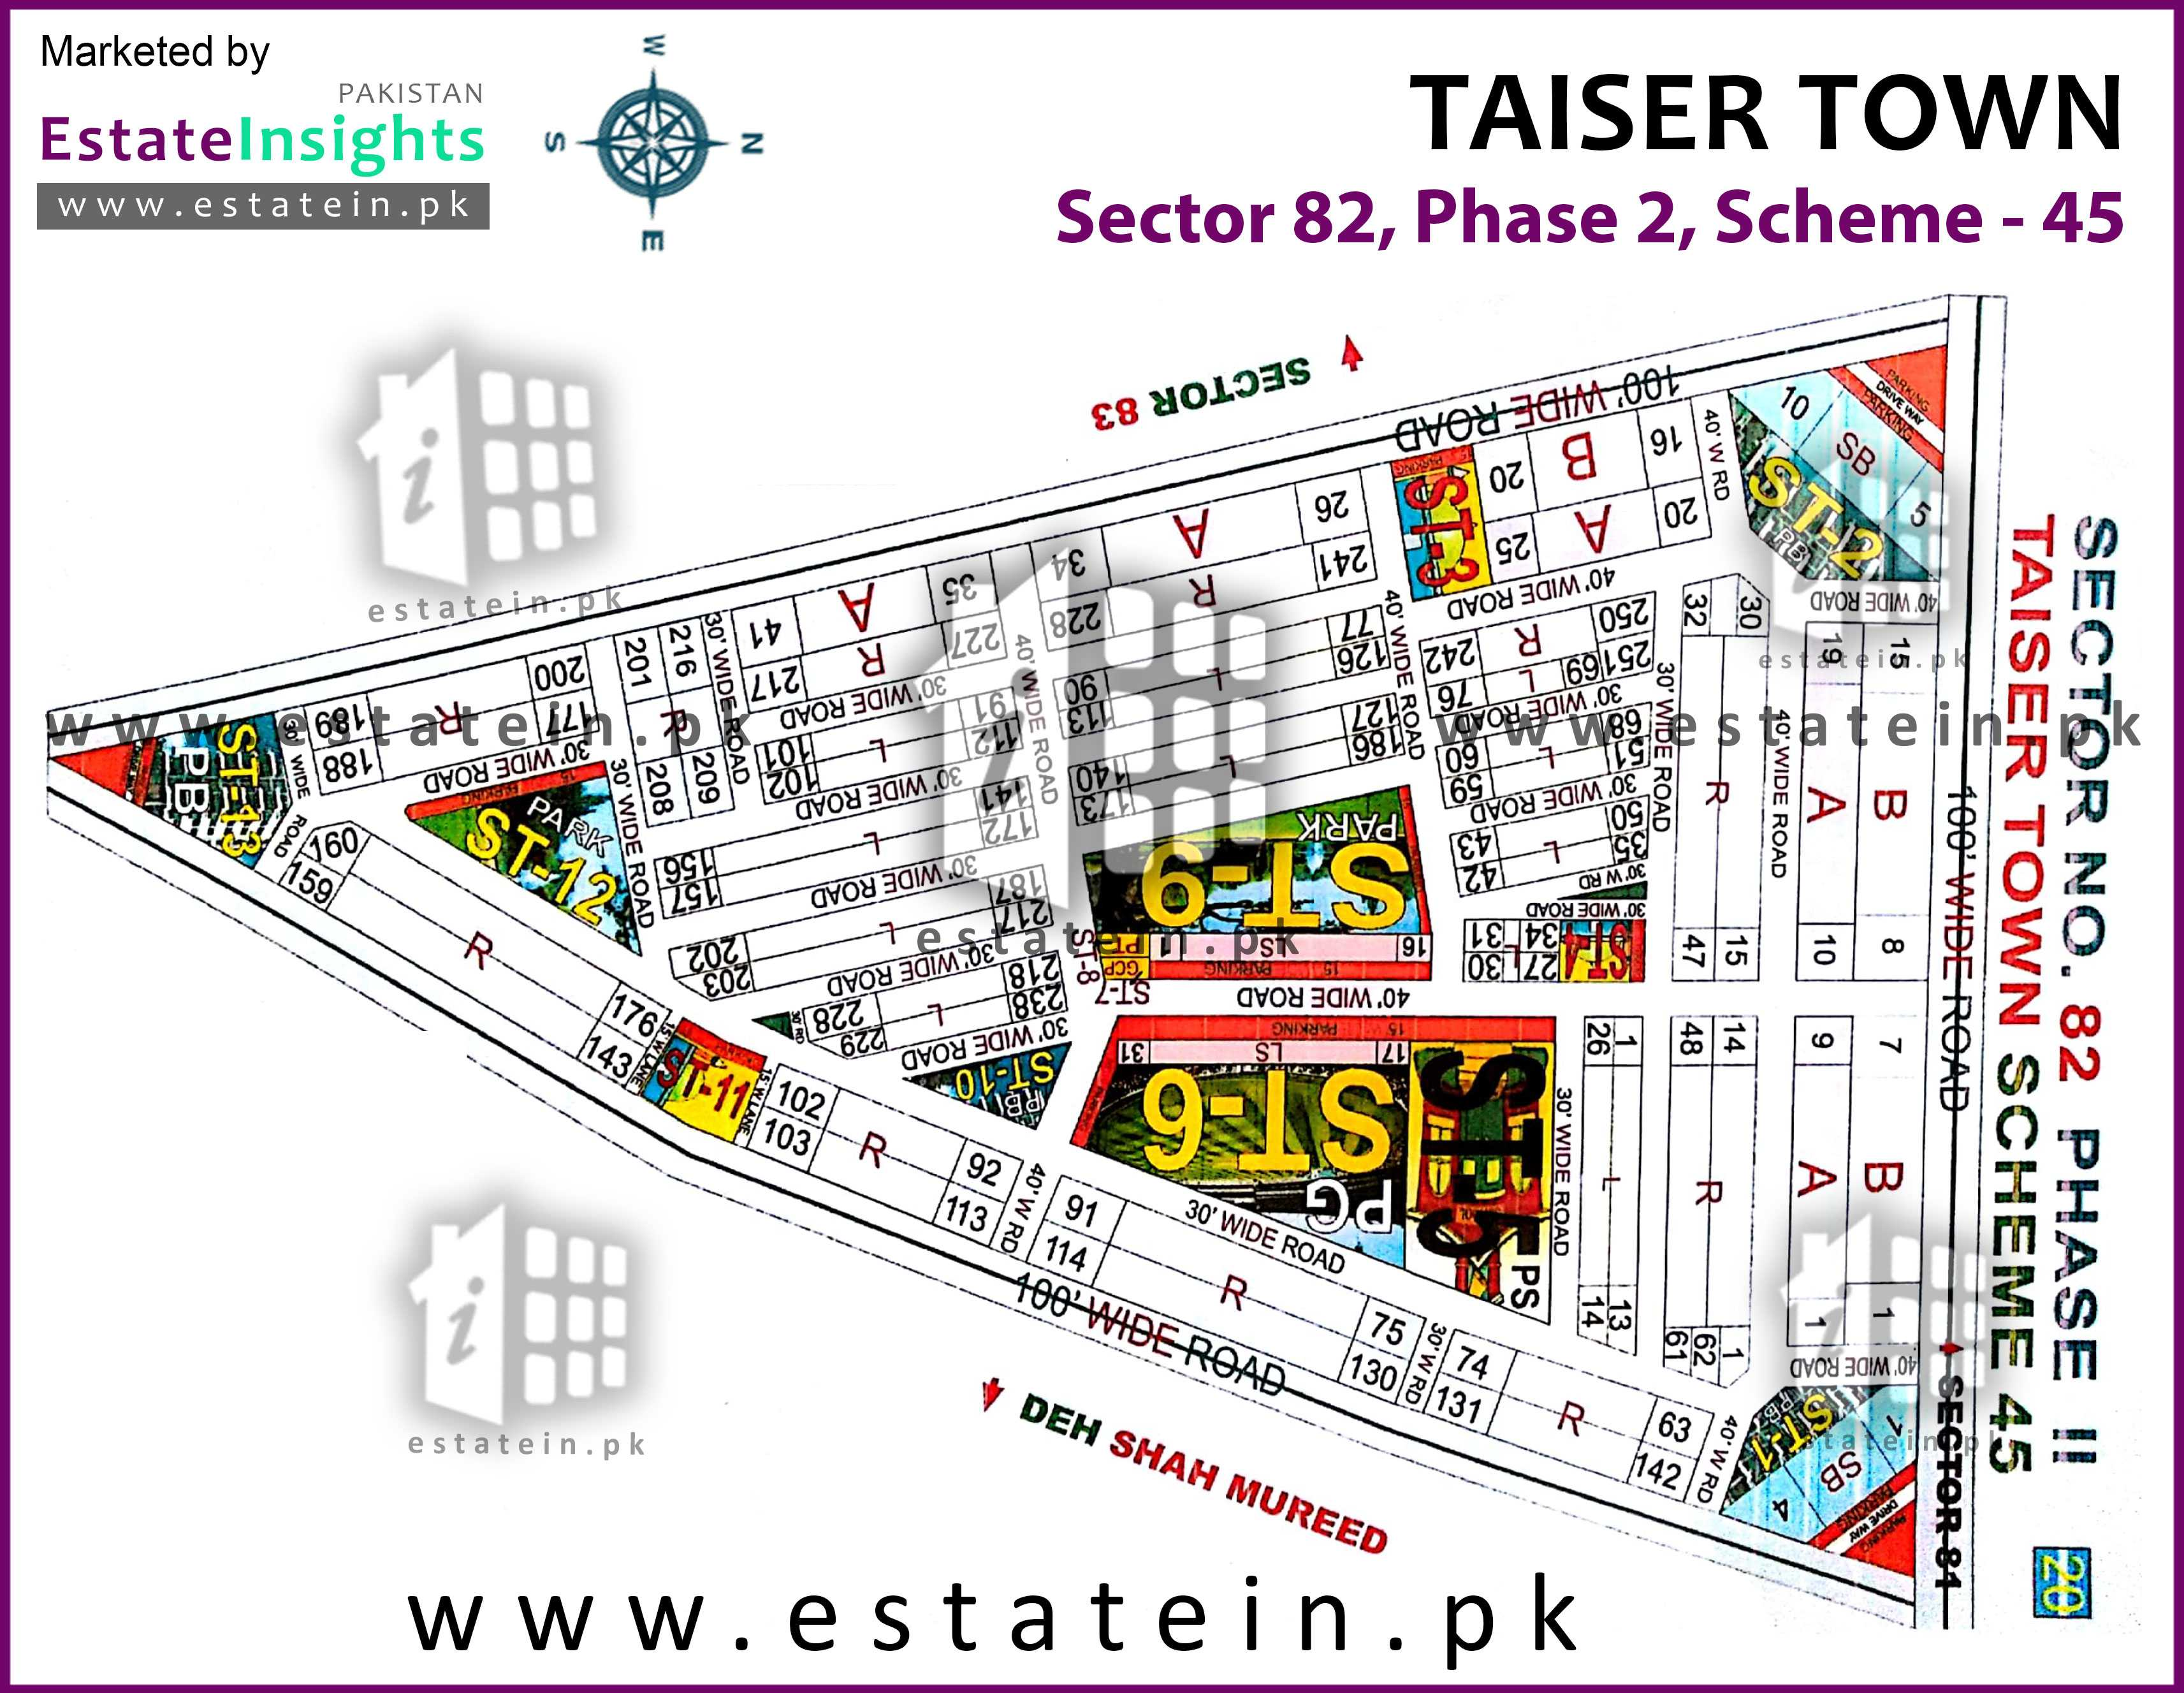 Site Plan of Sector 82 of Taiser Town Phase II